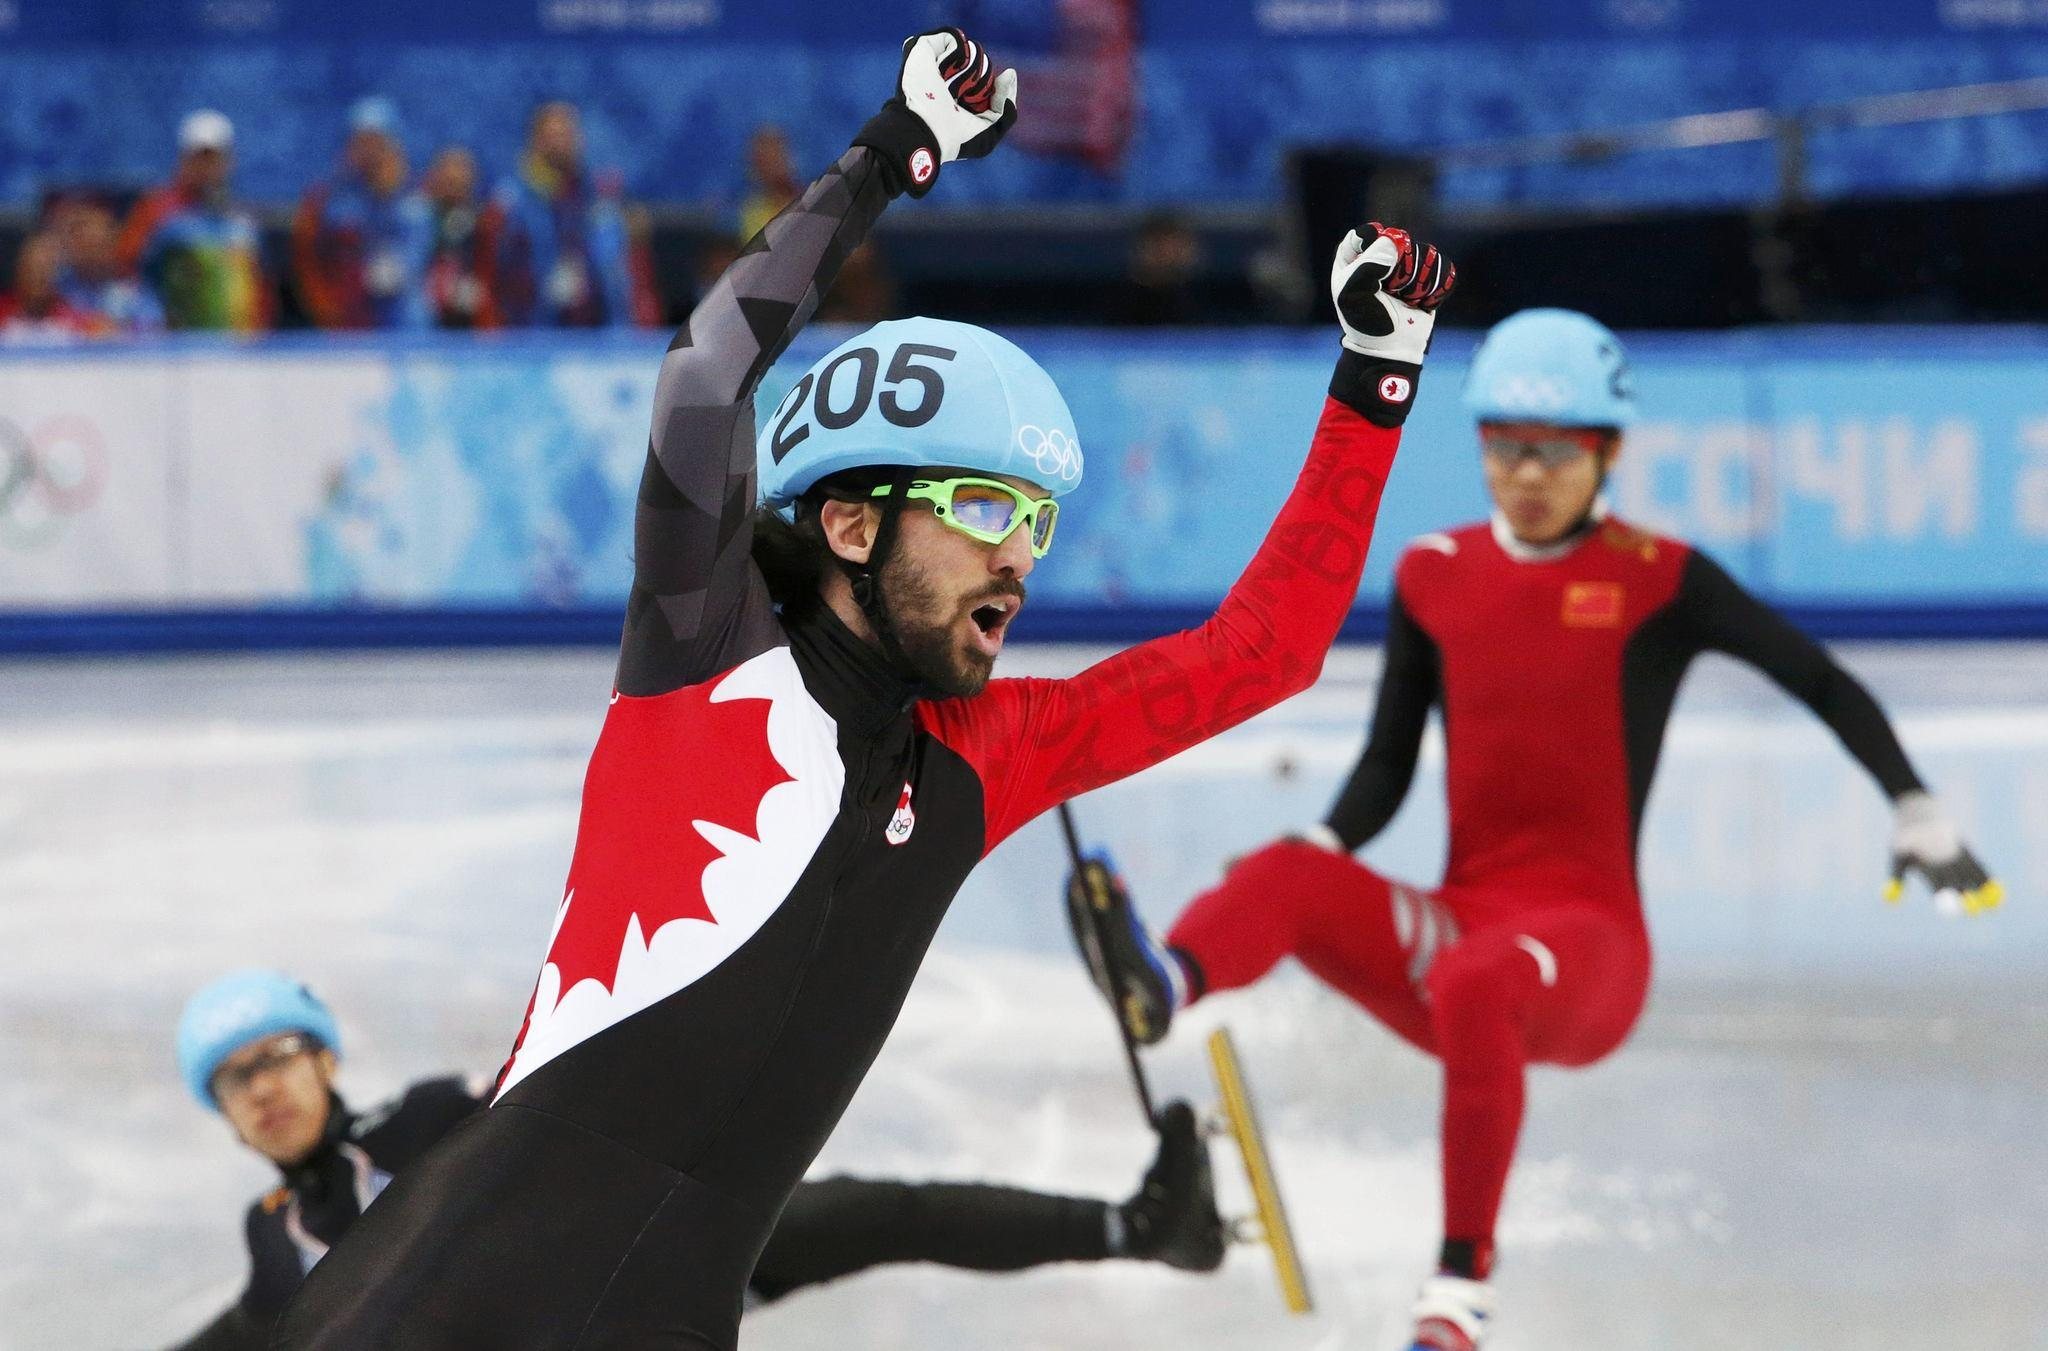 Canada's Charles Hamelin celebrates winning as China's Chen Dequan (back R) and J.R. Celski of the U.S. (bottom L) fall, during the men's 1,500.